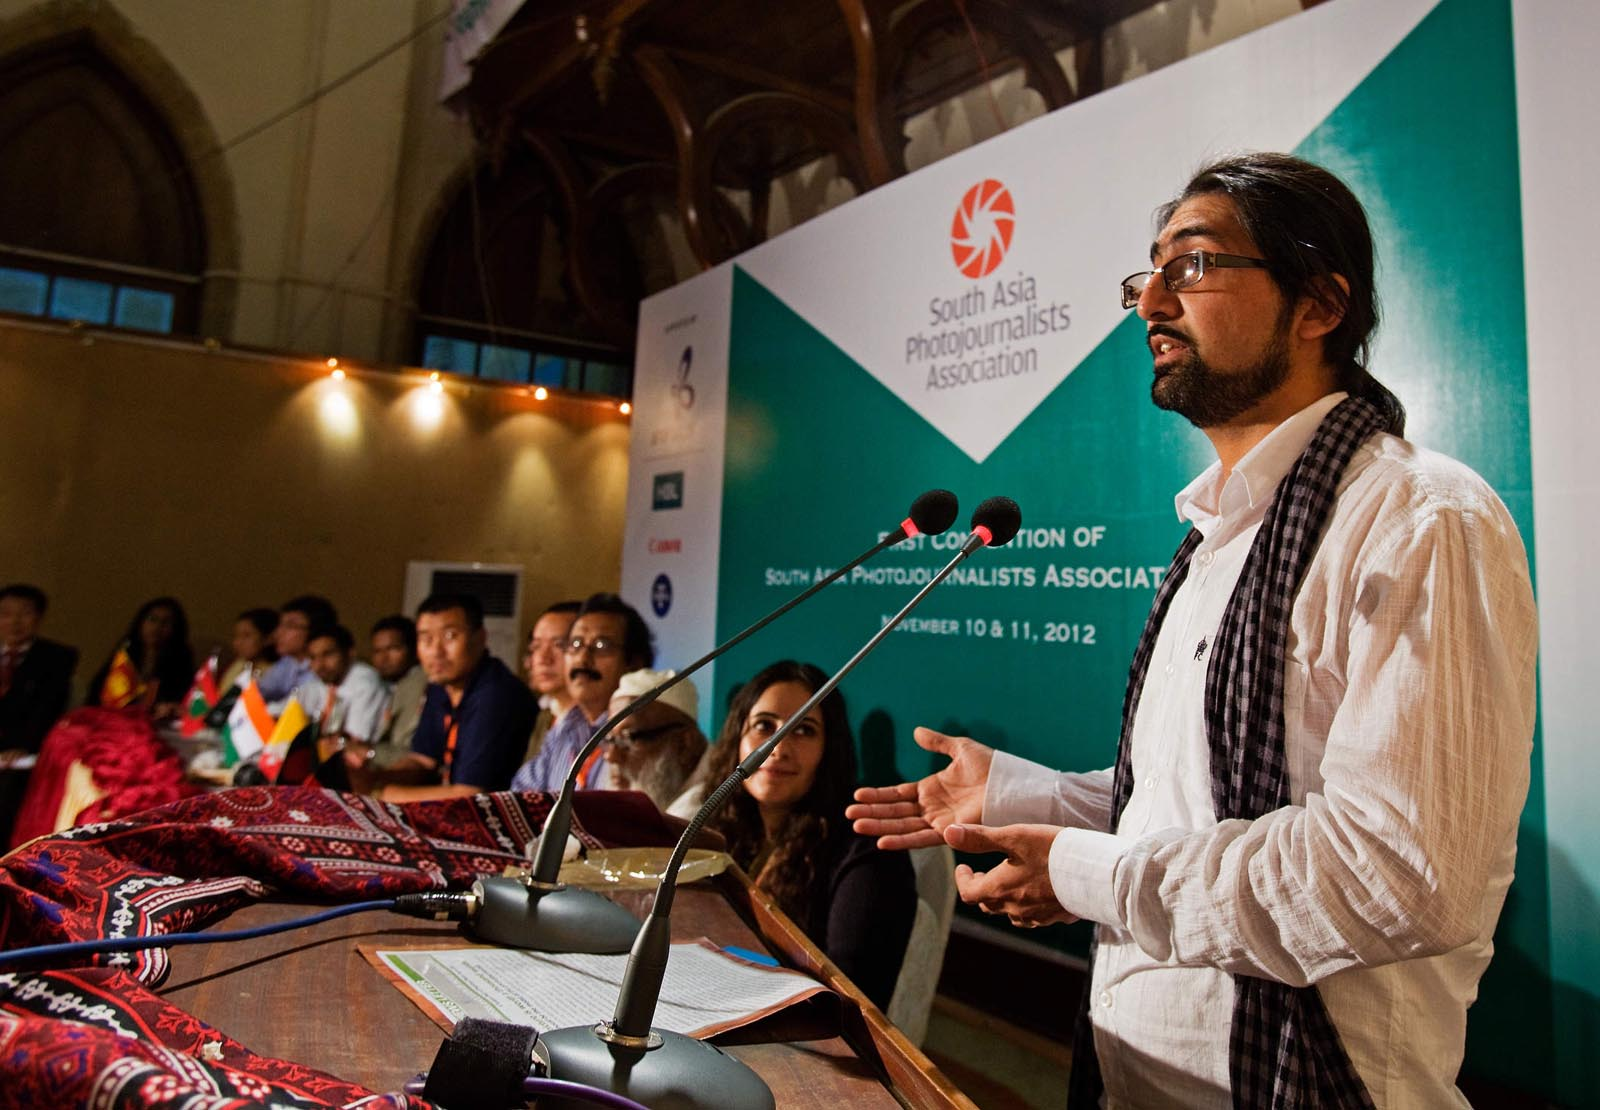 Photojournalist Massoud Hossaini addressed the South Asia Photojournalism Association convention after signing the founding constitution in Karachi, Pakistan on November 11, 2012. Hossaini is SAPA's first president. Photograph by Max Becherer-Polaris Images